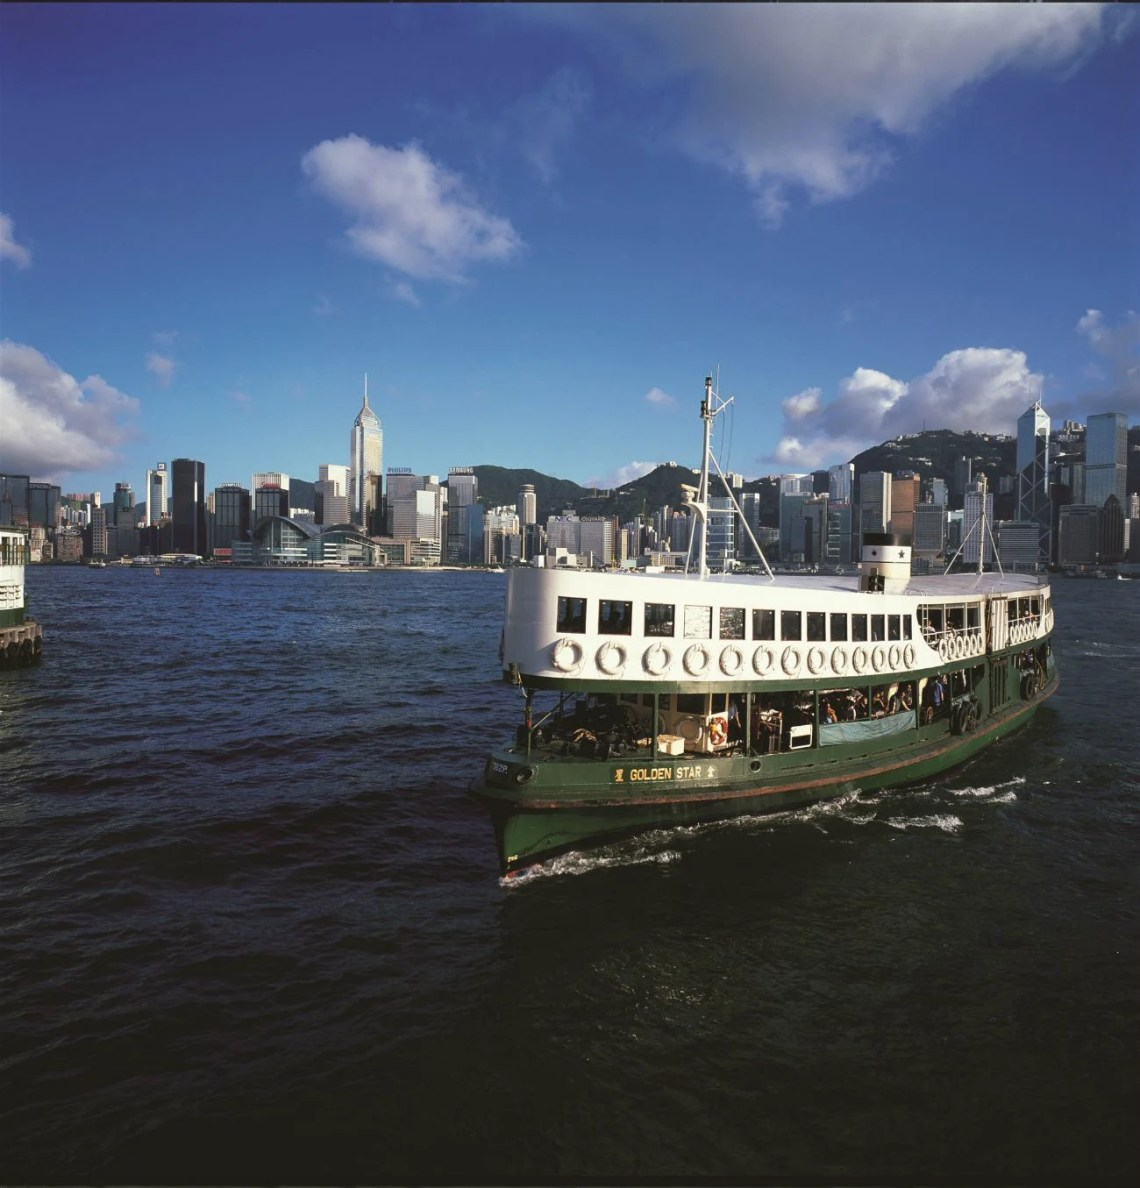 T J Kong Ride The Bomb: 18 Things To Do In Hong Kong With Kids